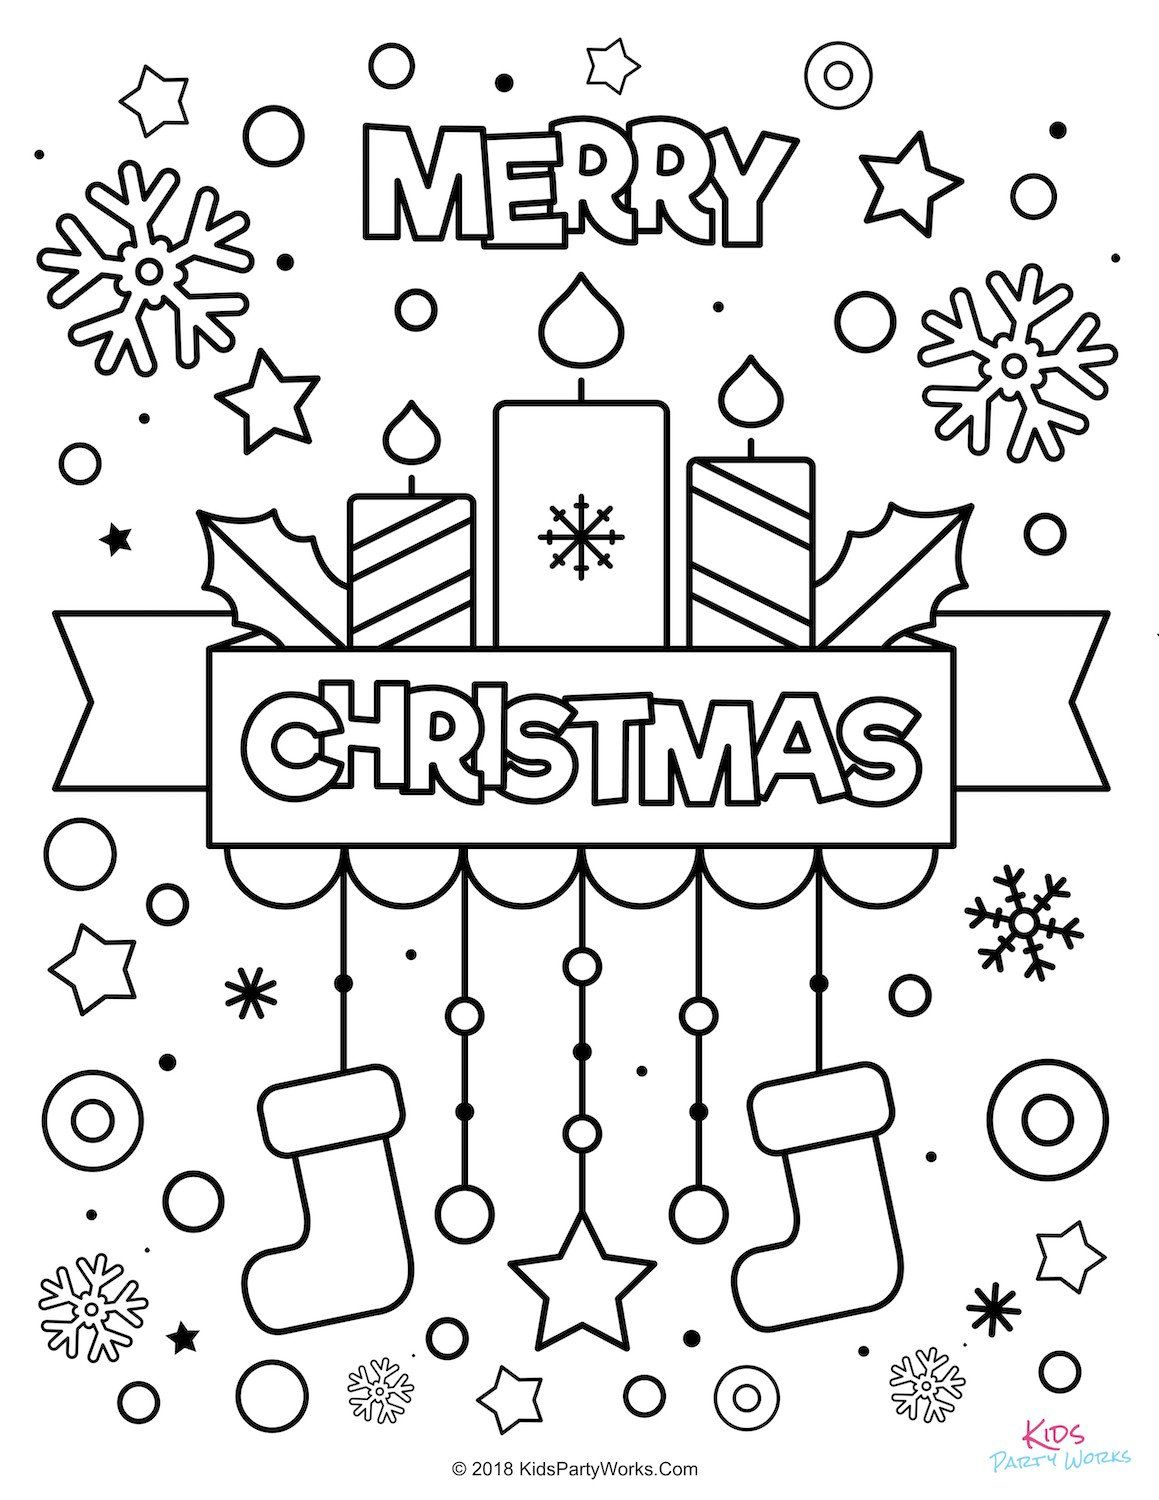 Free Christmas Coloring Pages Christmas Coloring Pages Merry Christmas Coloring Pages Christmas Coloring Pages Christmas Coloring Sheets